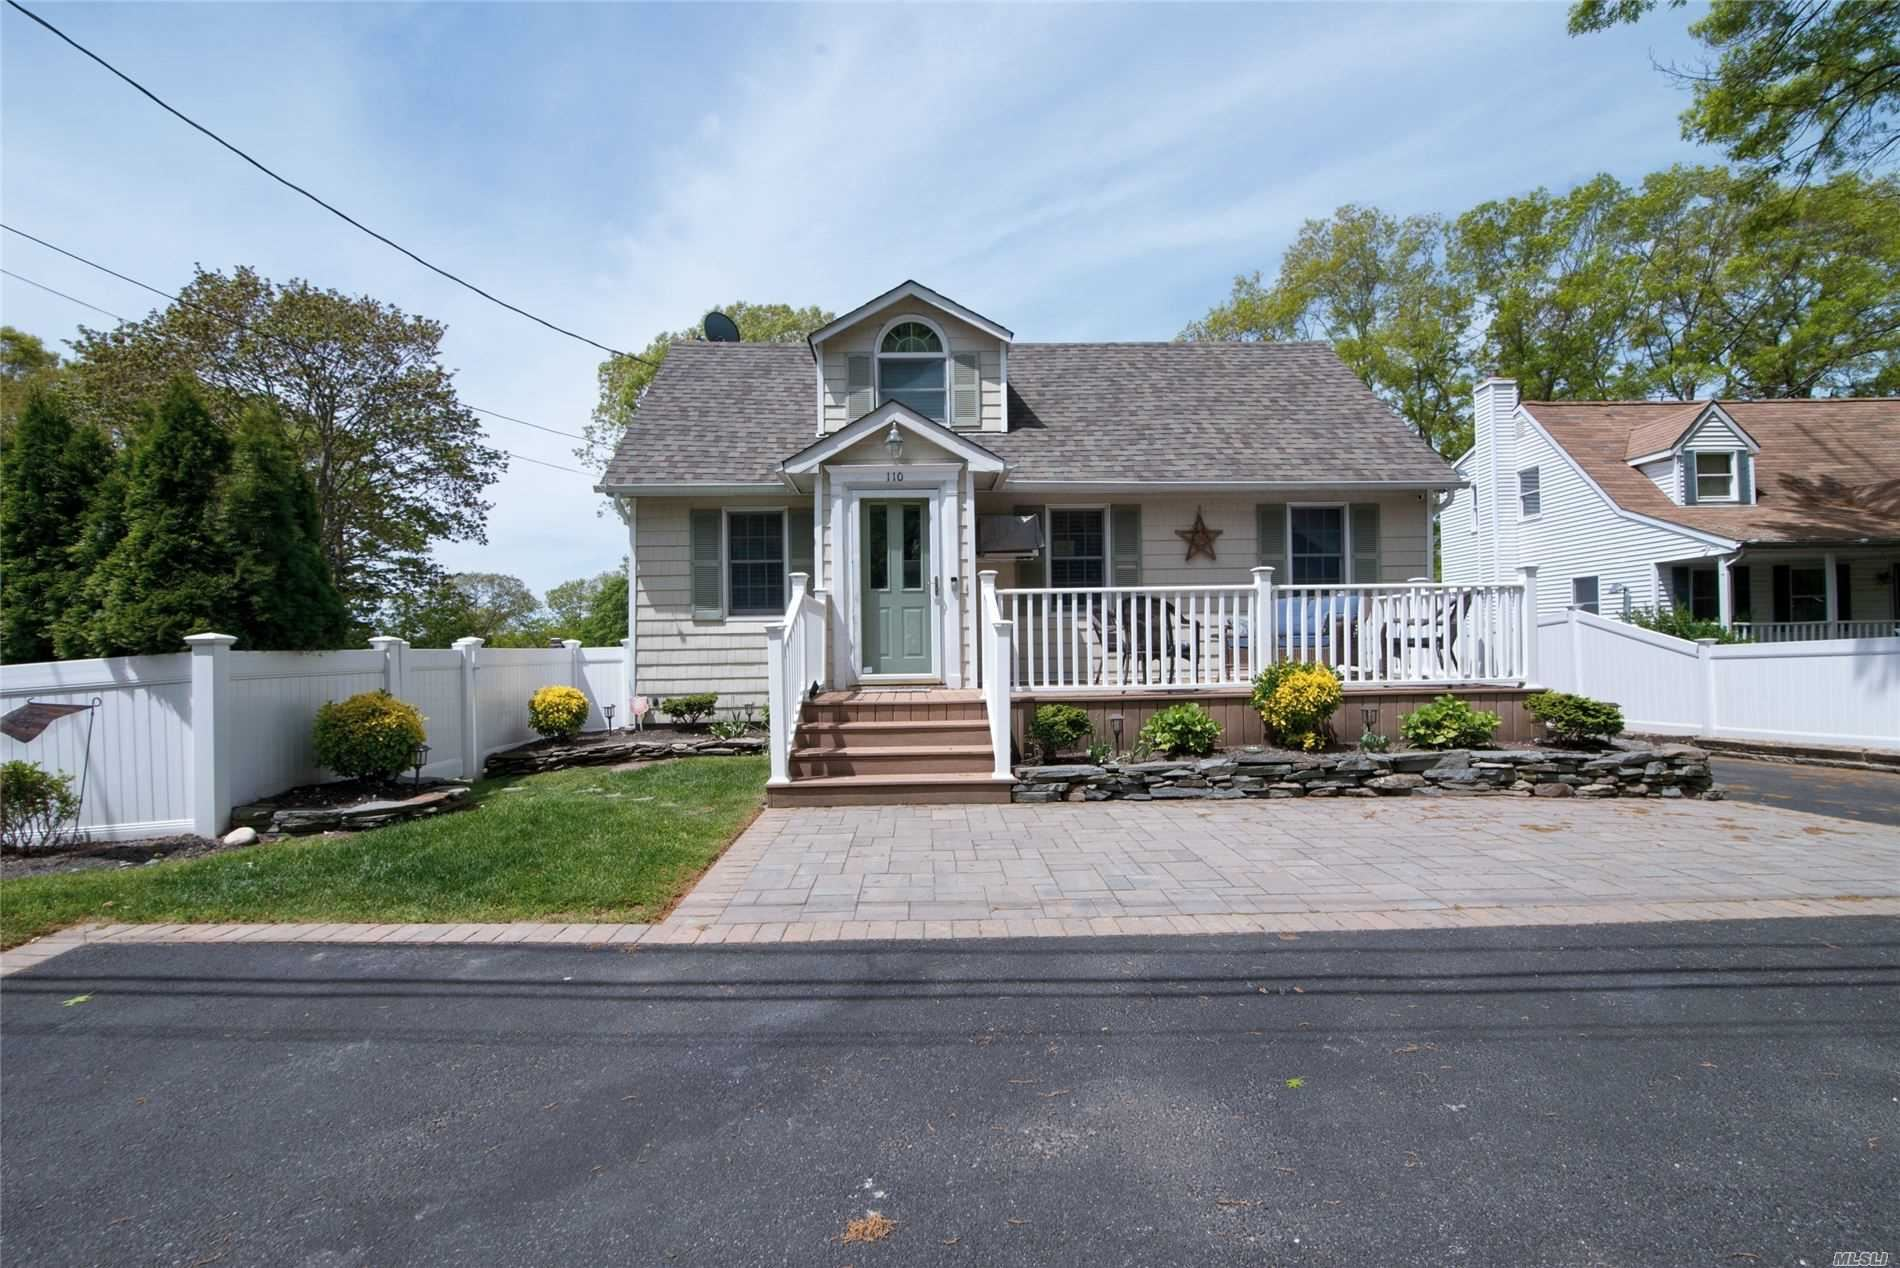 110 Curtis Dr, Sound Beach, NY 11789 - MLS#: 3216526